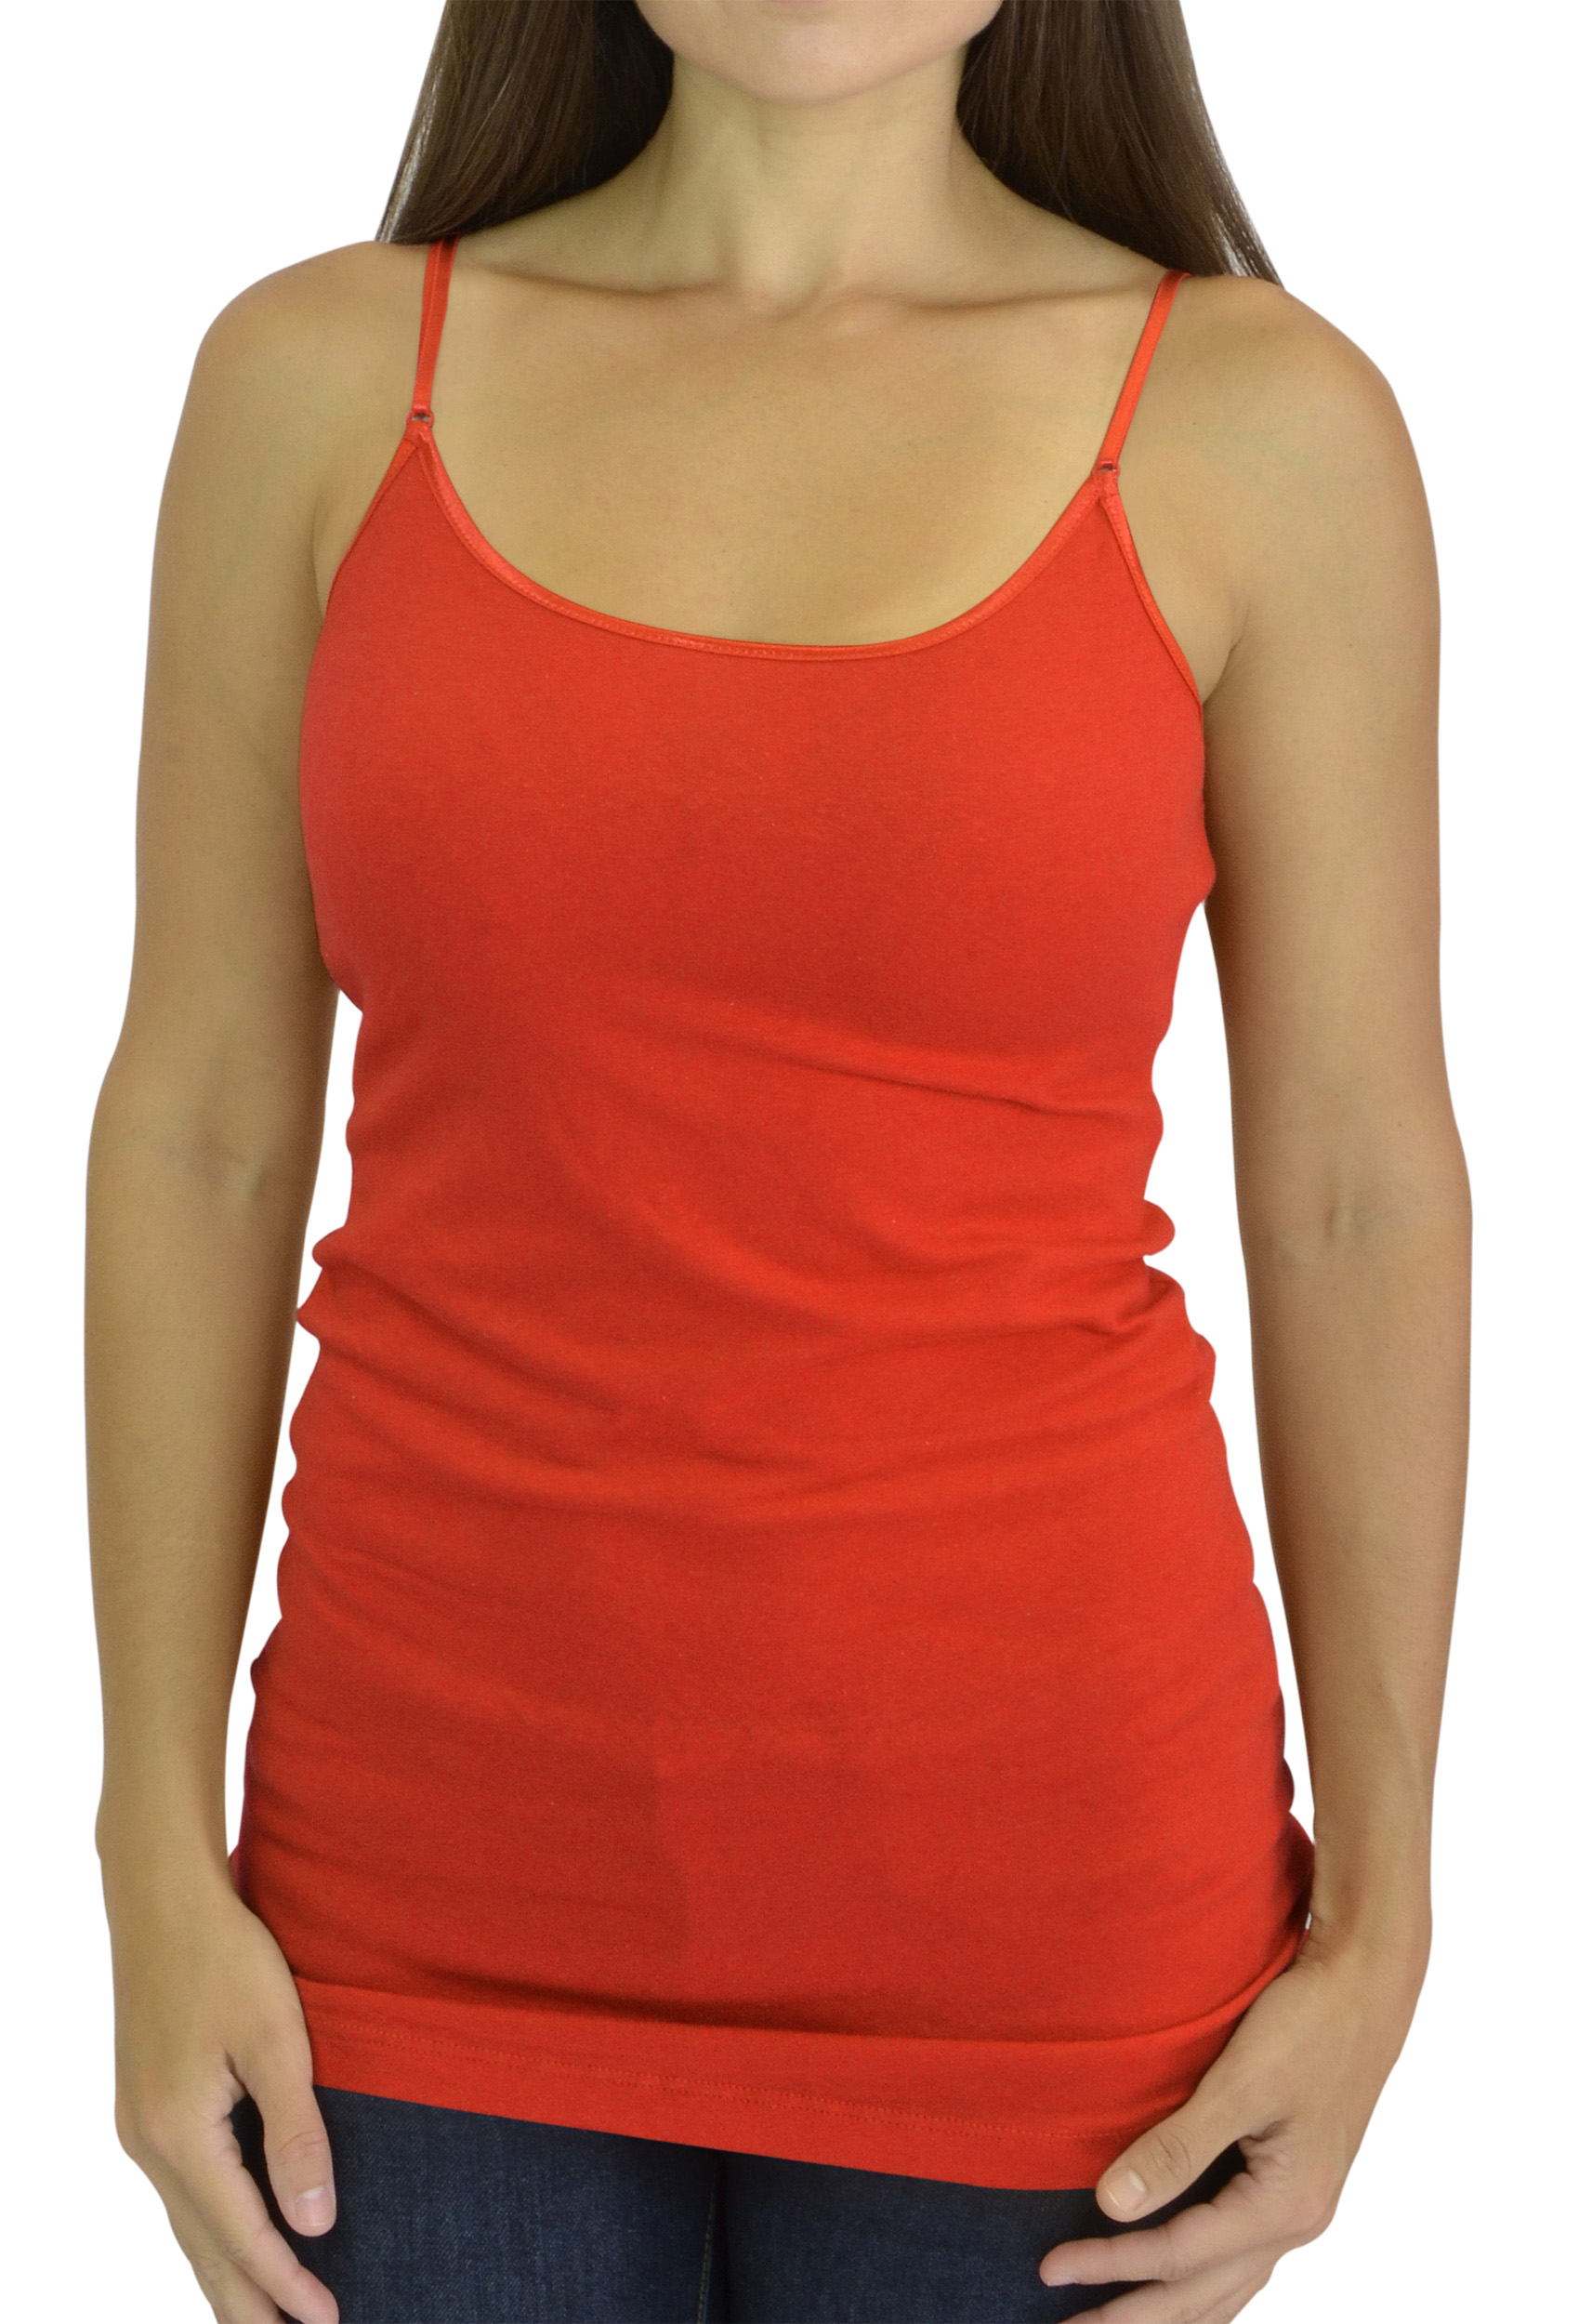 Belle Donne Women's Adjustable SpaghettiStrap Tanktop Cami - Tomato Medium